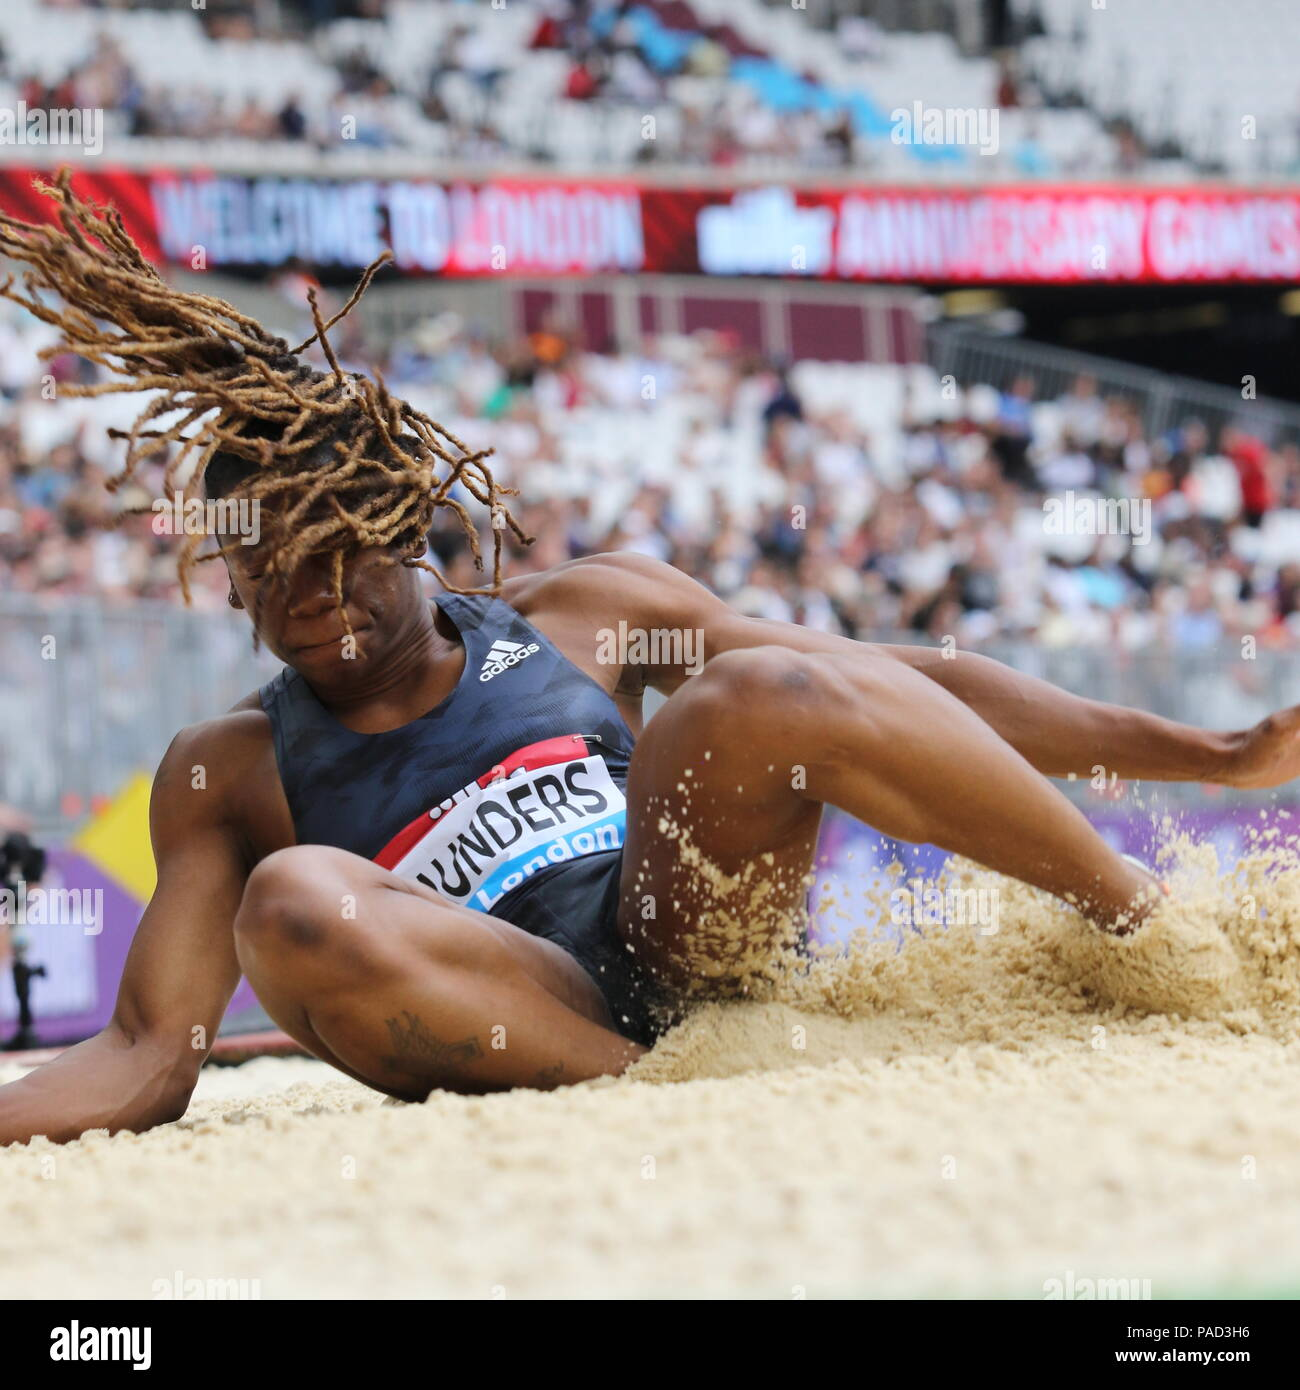 London, UK. 21st July, 2018. Sha'Keela SAUNDERS (USA) competing in the Women's Long Jump at the IAAF Diamond League, Muller Anniversary Games, Queen Elizabeth Olympic, LONDON, UK 21 July 2018 Credit: Grant Burton/Alamy Live News - Stock Image